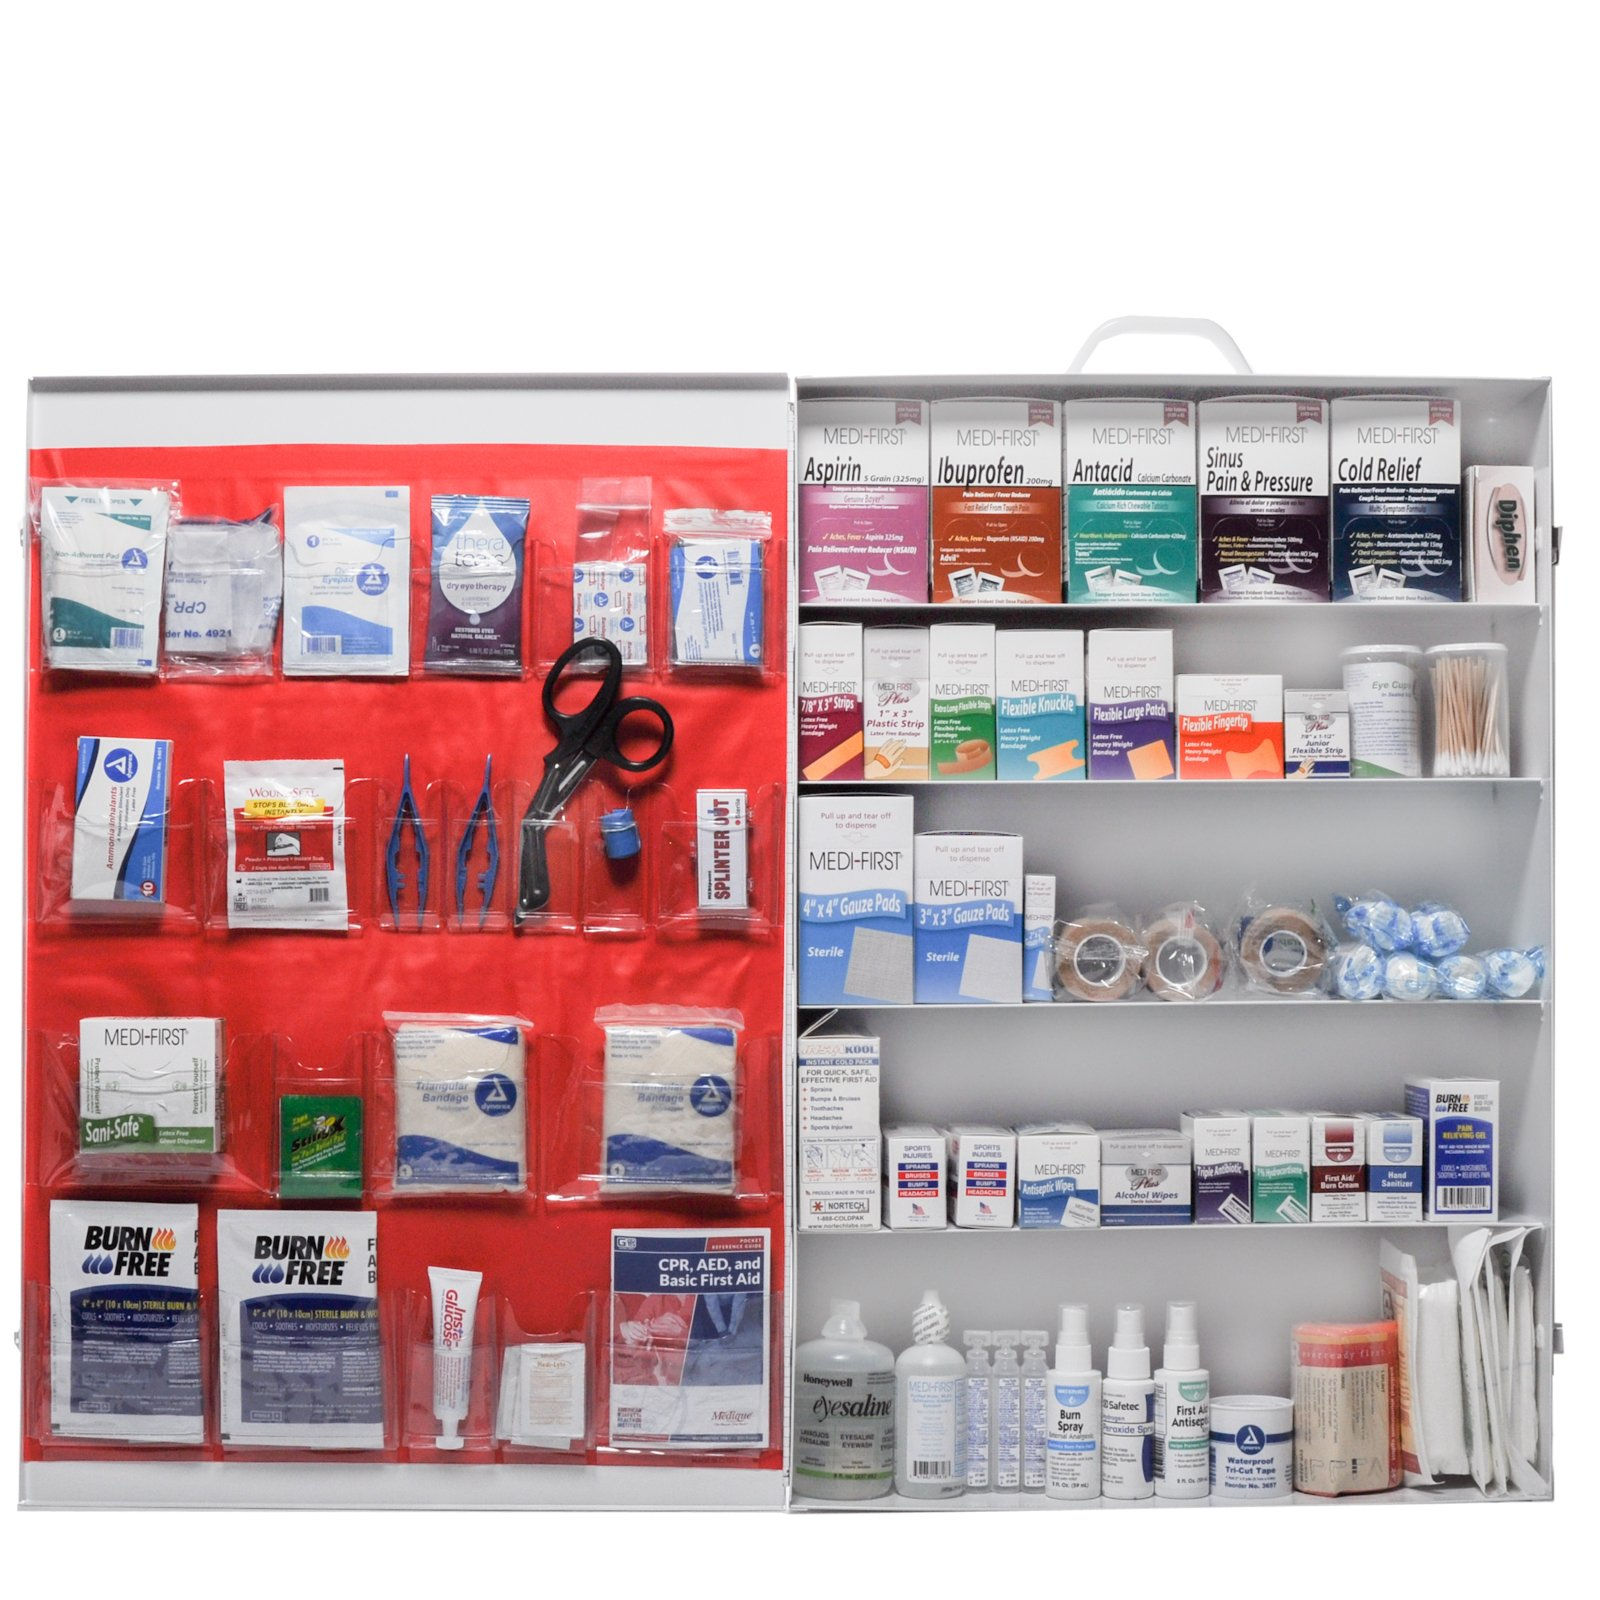 MFASCO Extra Large Deluxe First Aid Kit Complete 5 Shelf